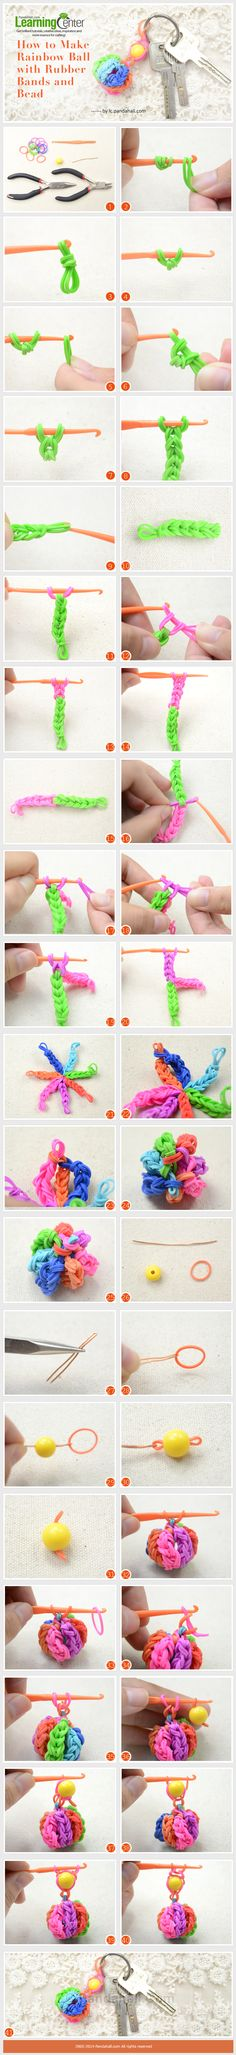 How to Make Rainbow Ball with Rubber Bands and Bead